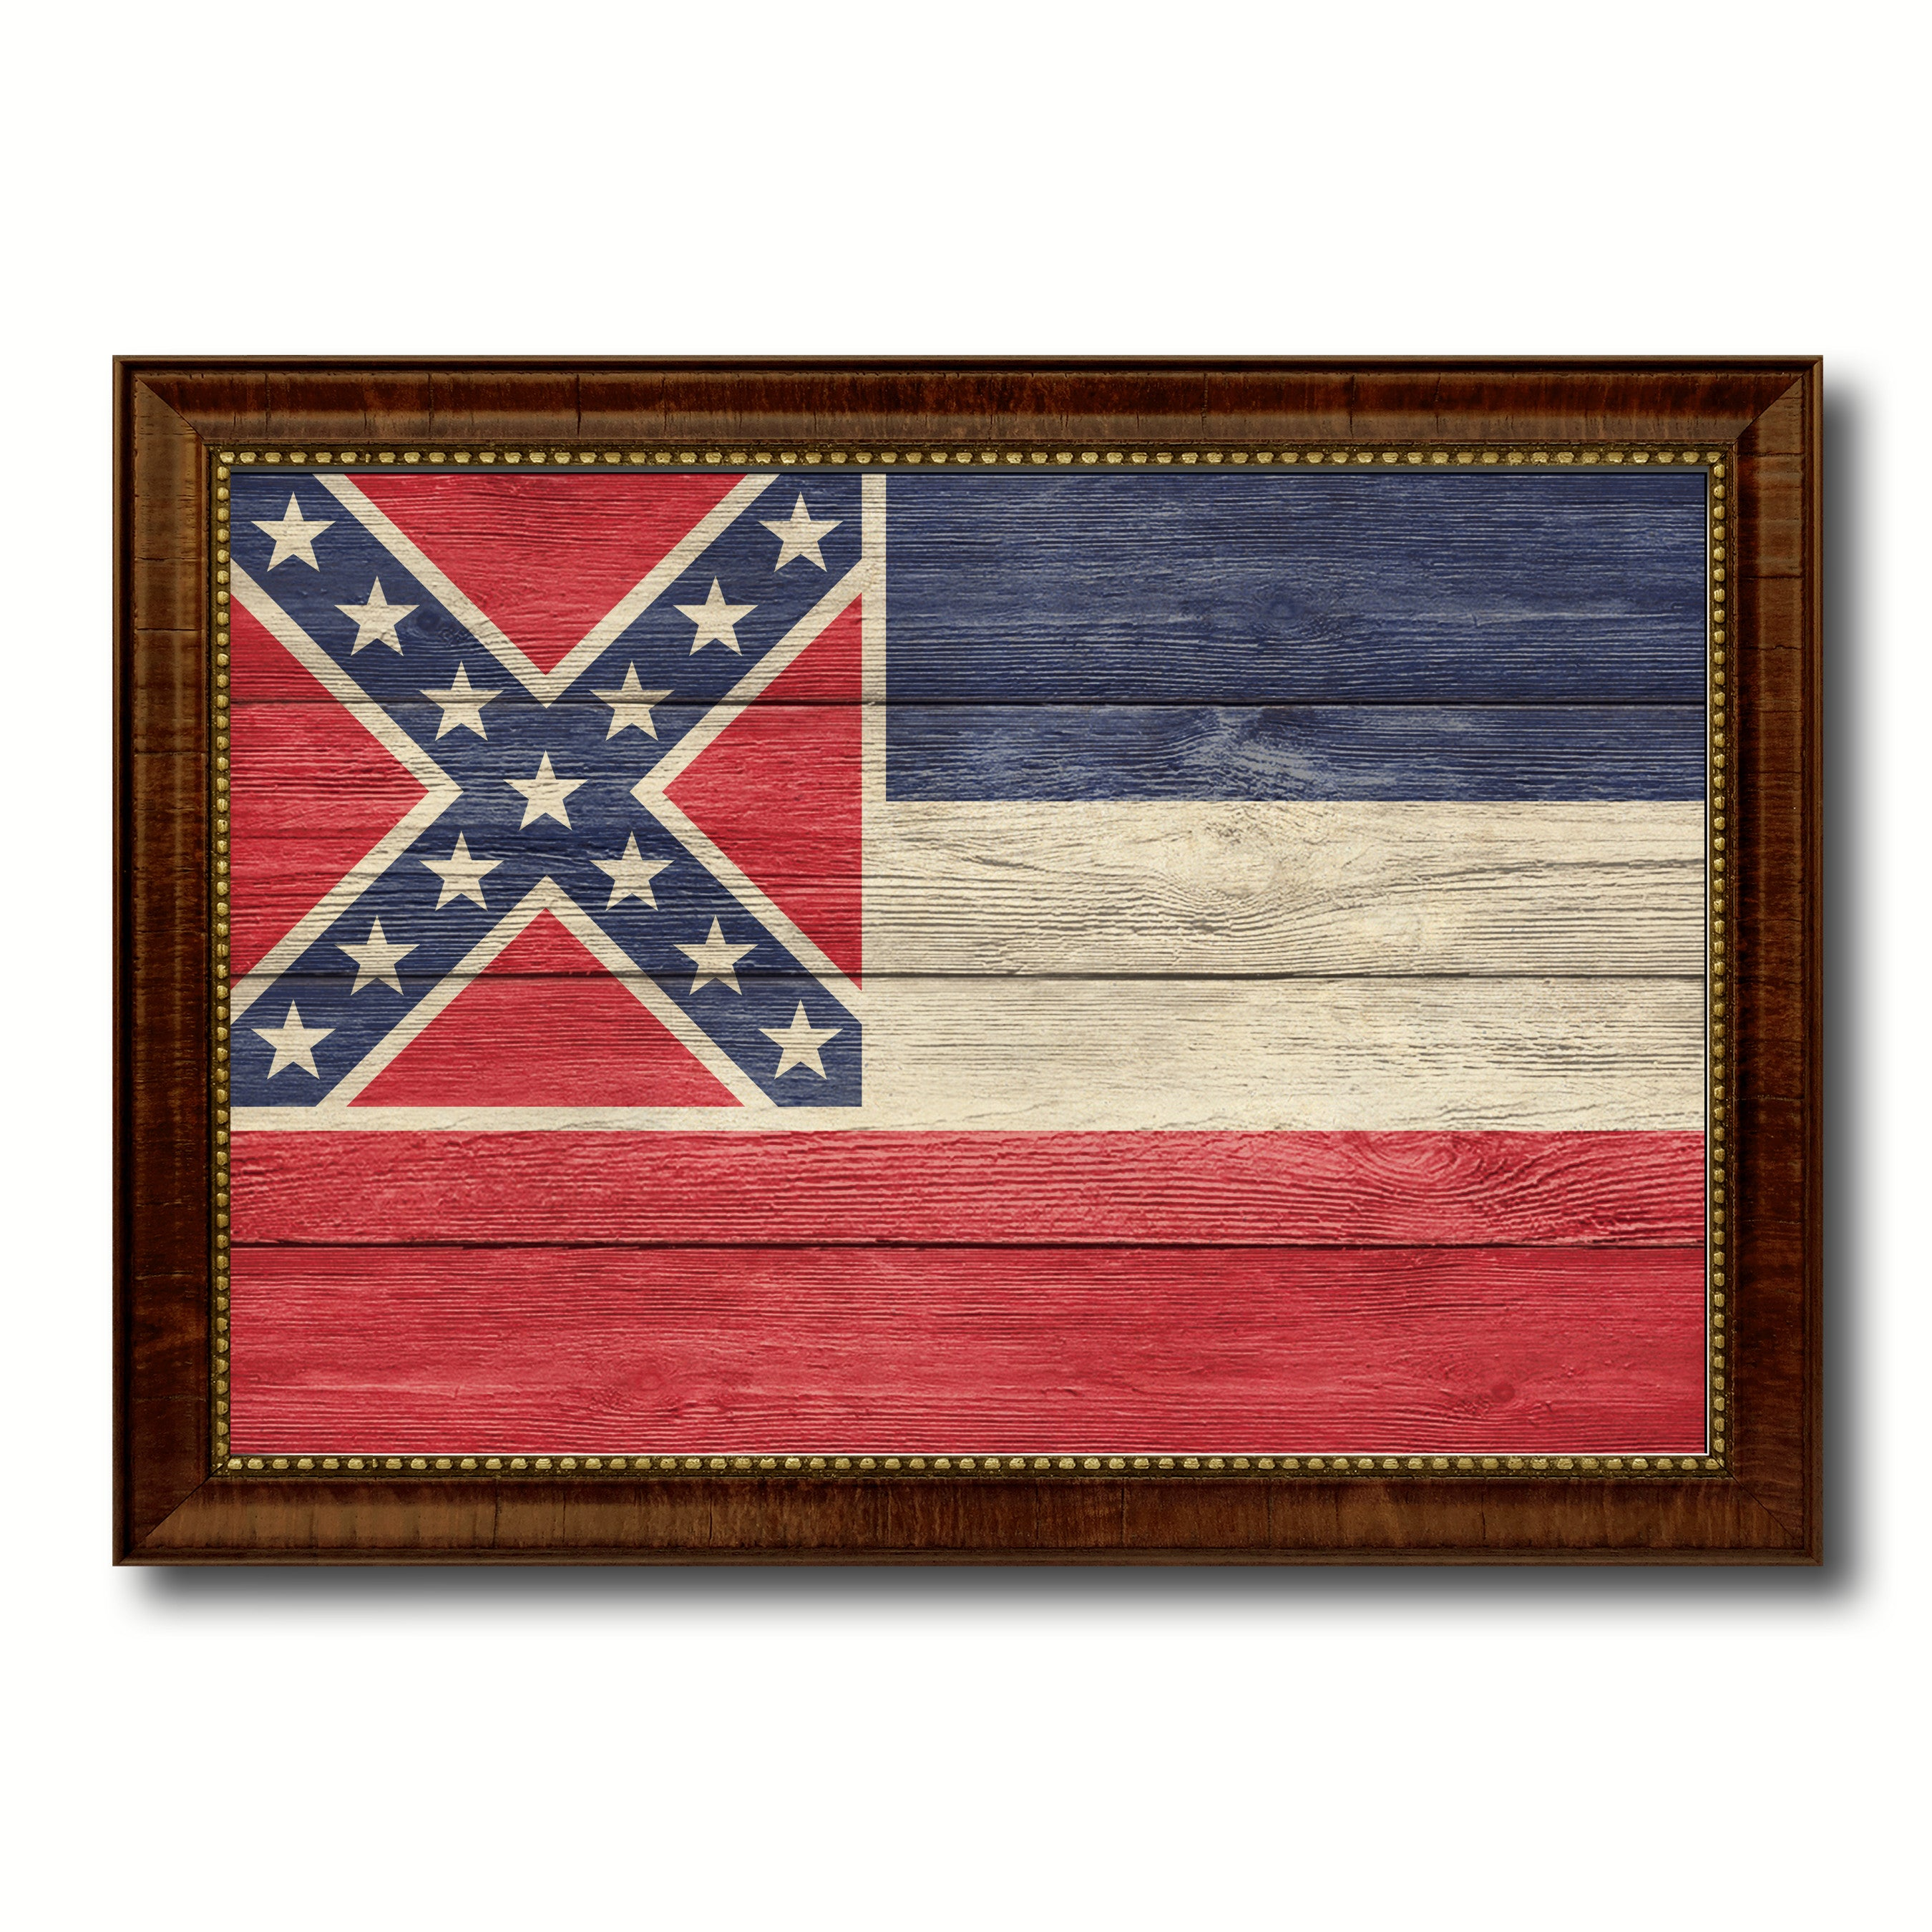 Mississippi State Flag Texture Canvas Print with Brown Picture Frame Gifts Home Decor Wall Art Collectible Decoration